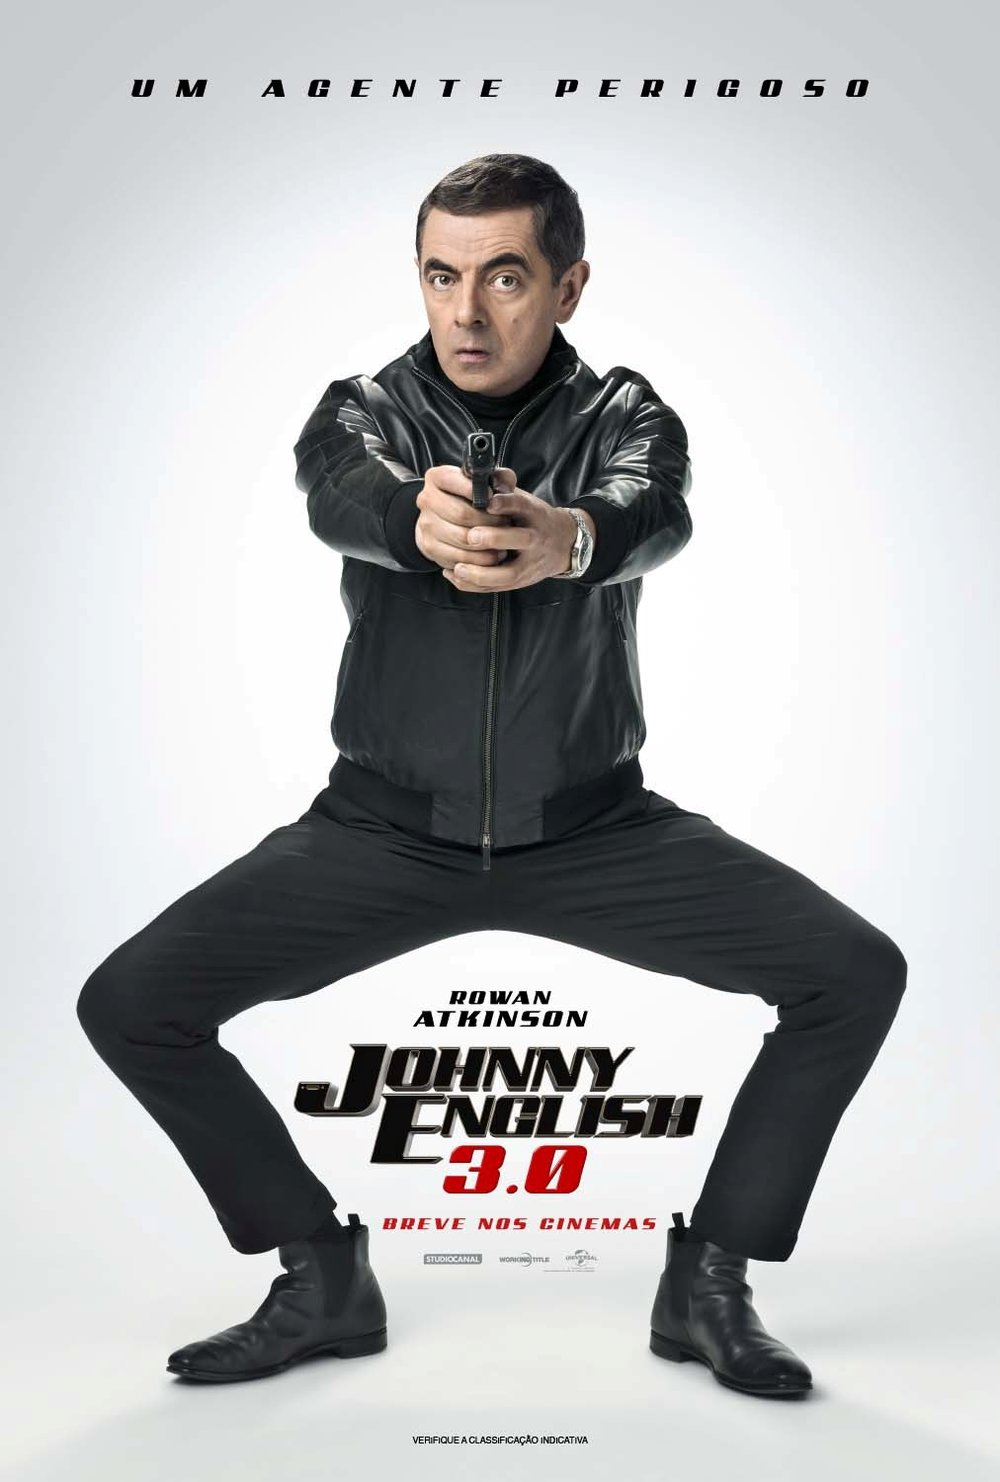 johnnyenglish.jpg